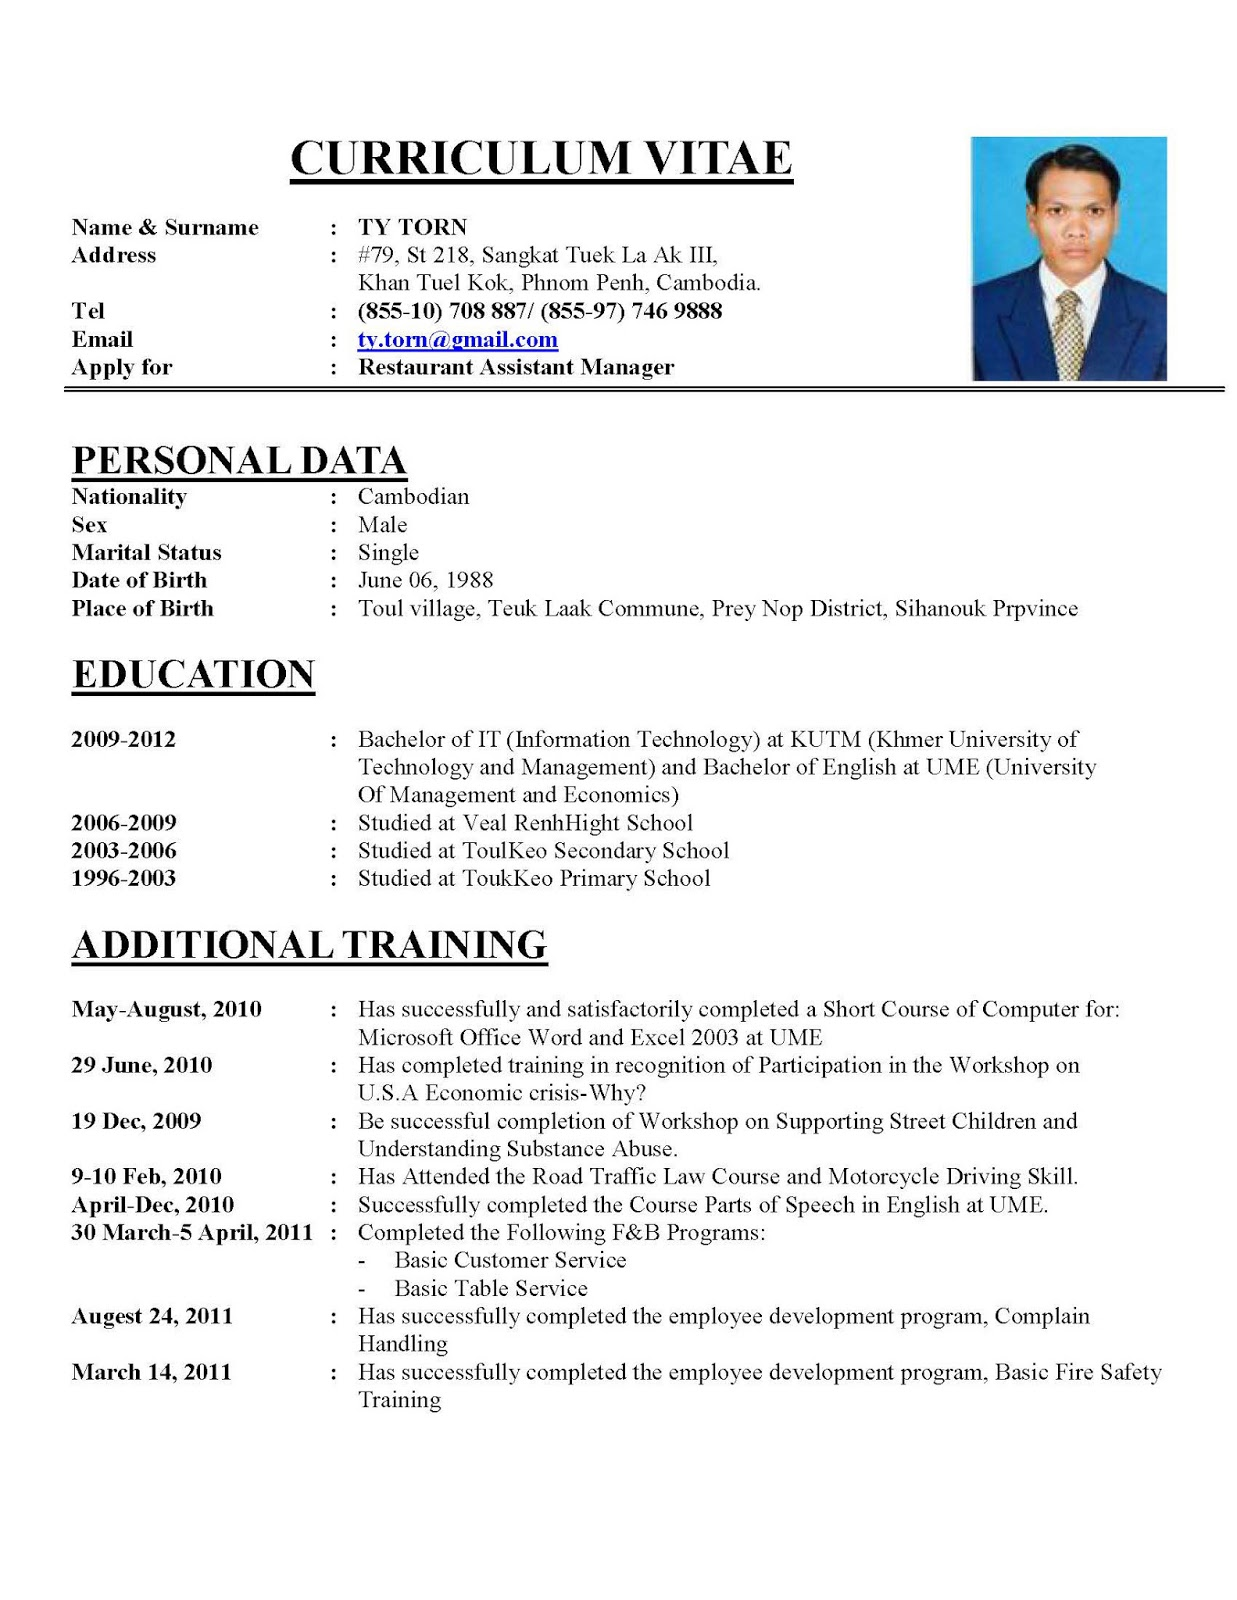 resume cv sample resume cv sample makemoney alex tk